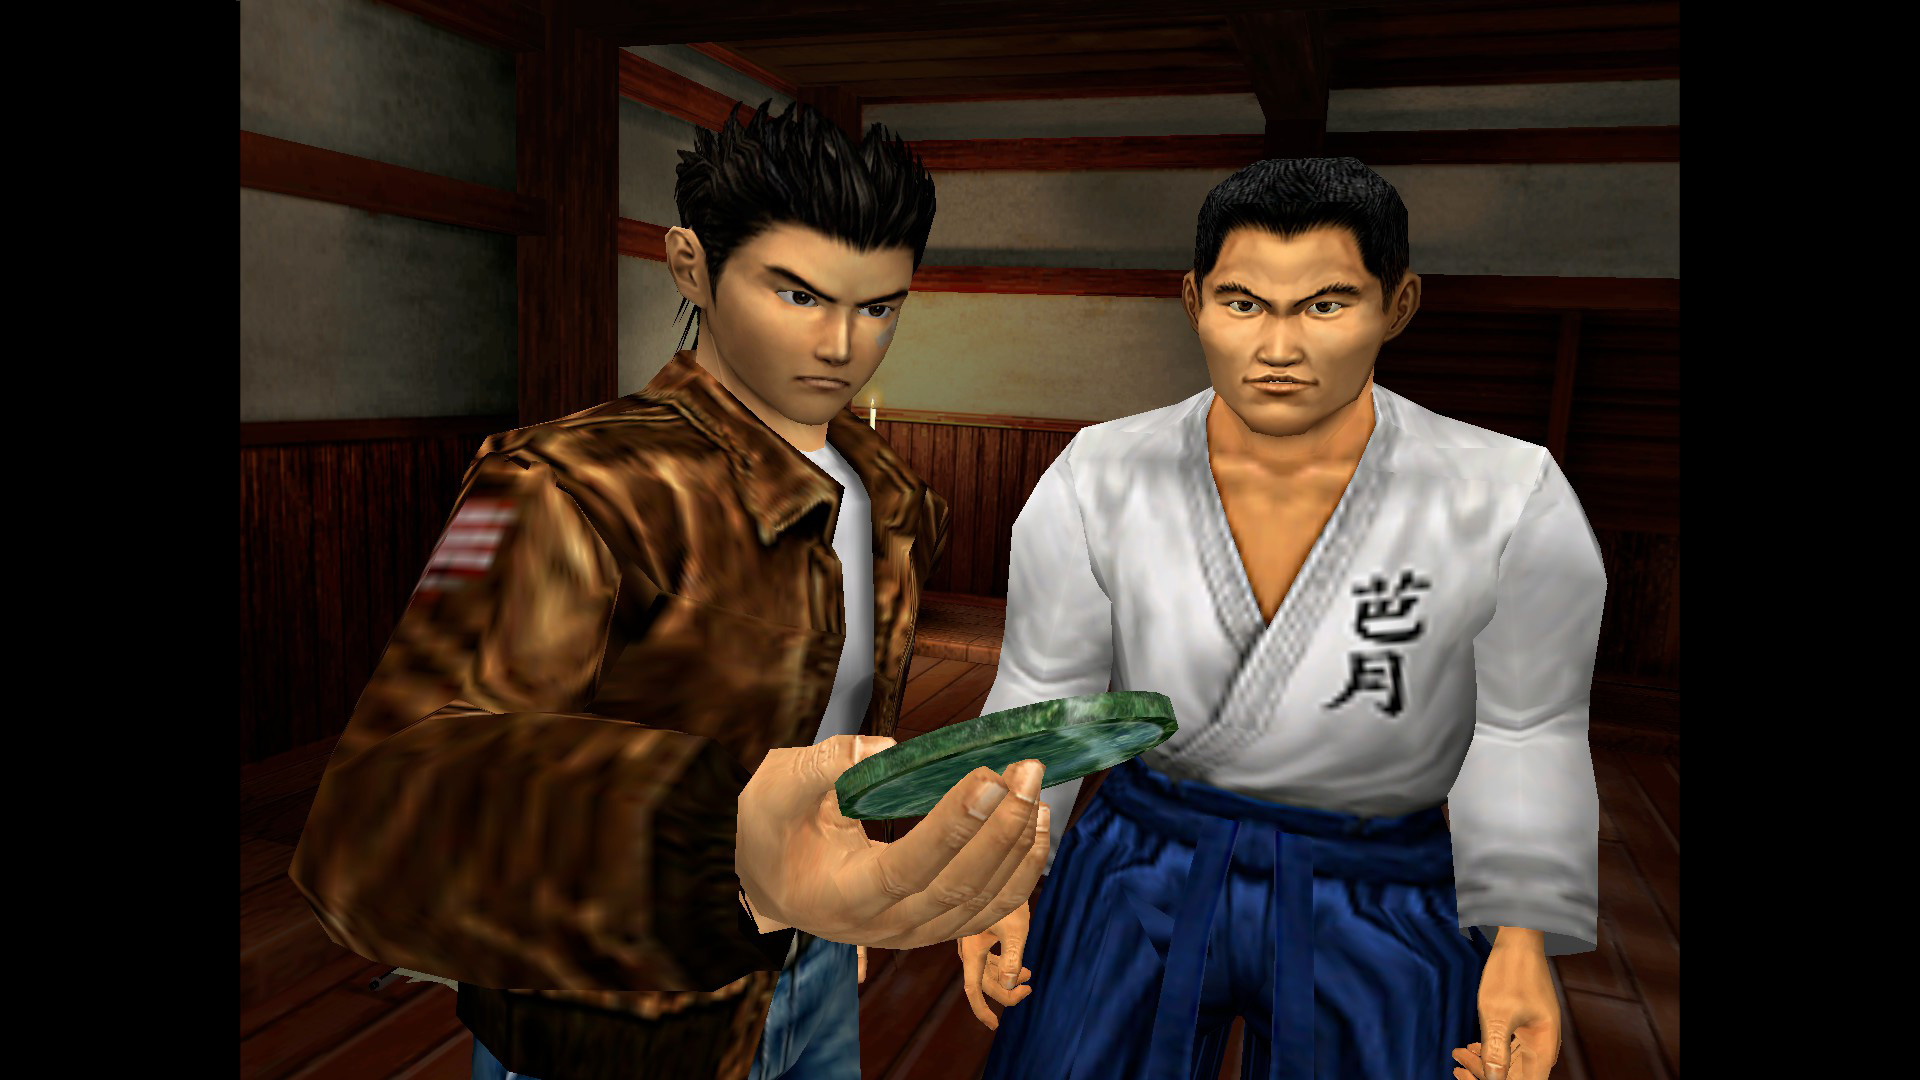 Shenmue I & II - the search for sailors begins again